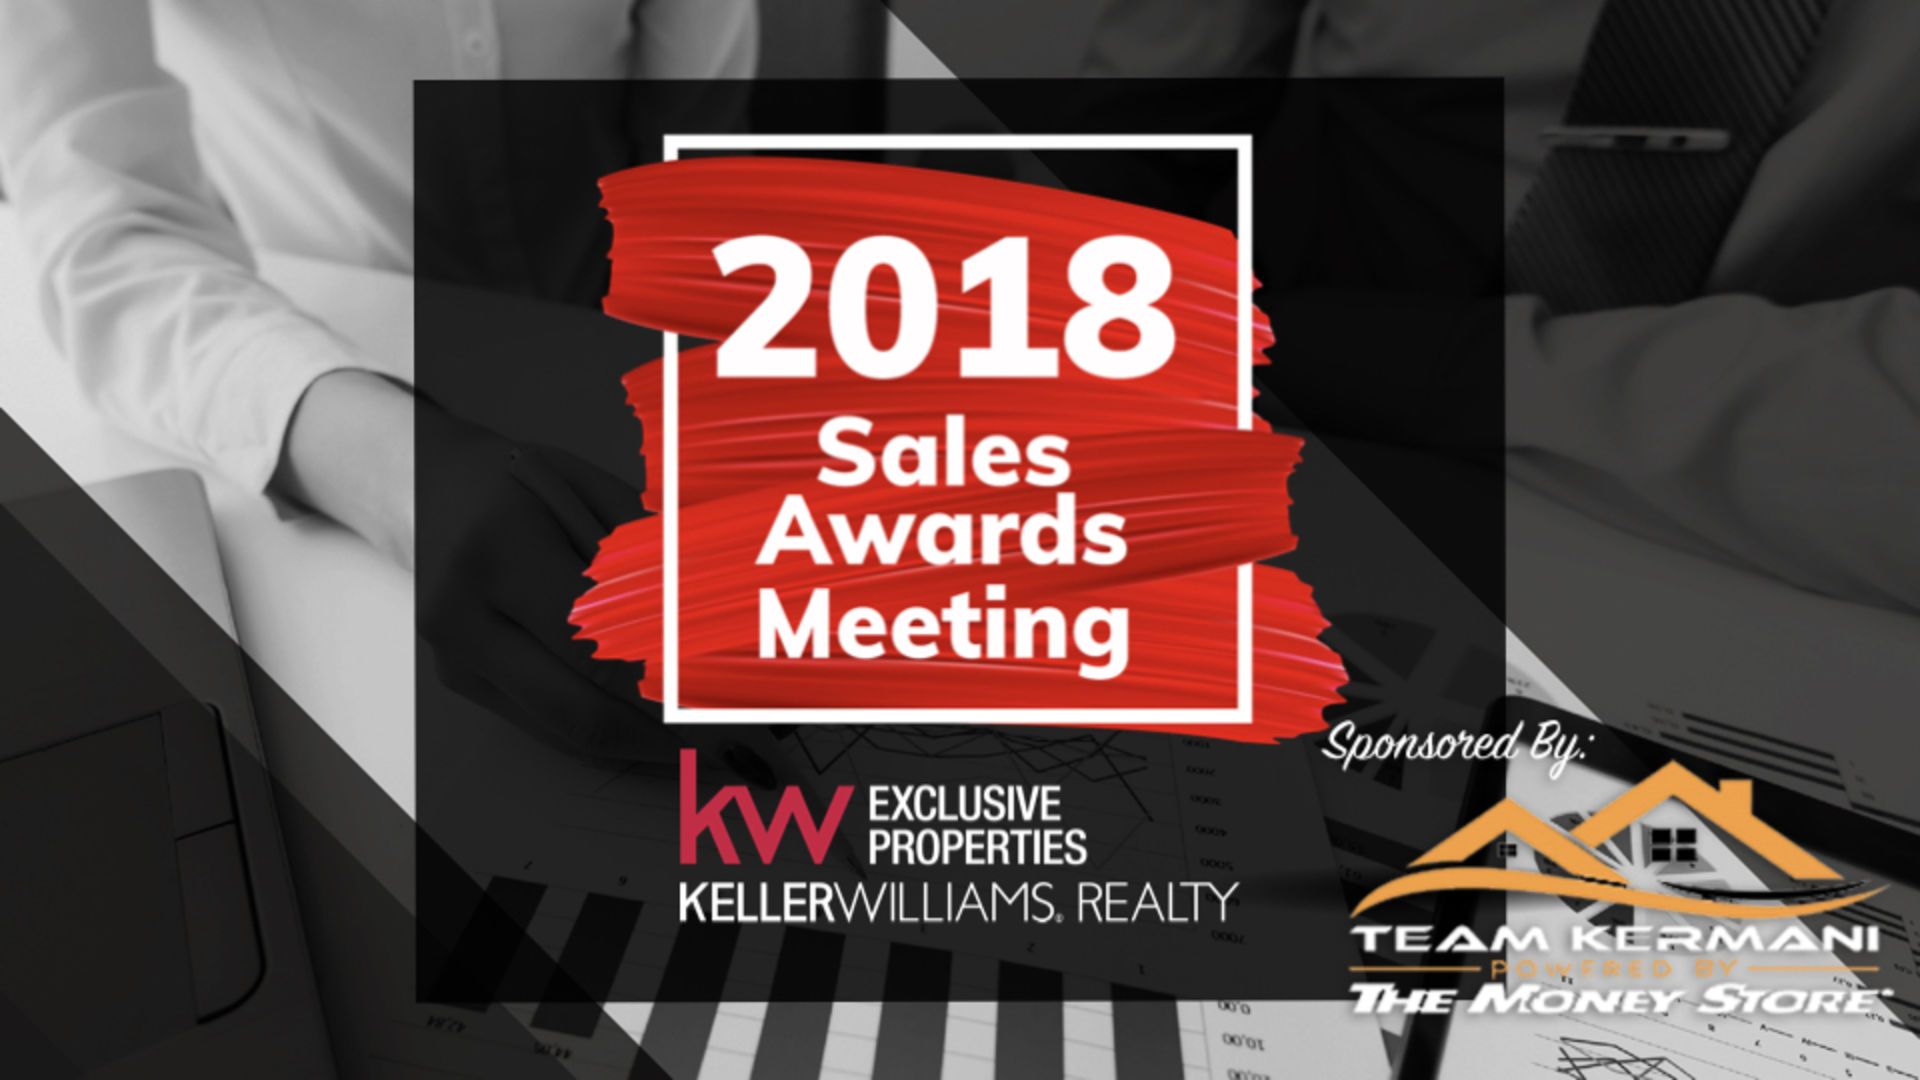 2018 Sales Awards!